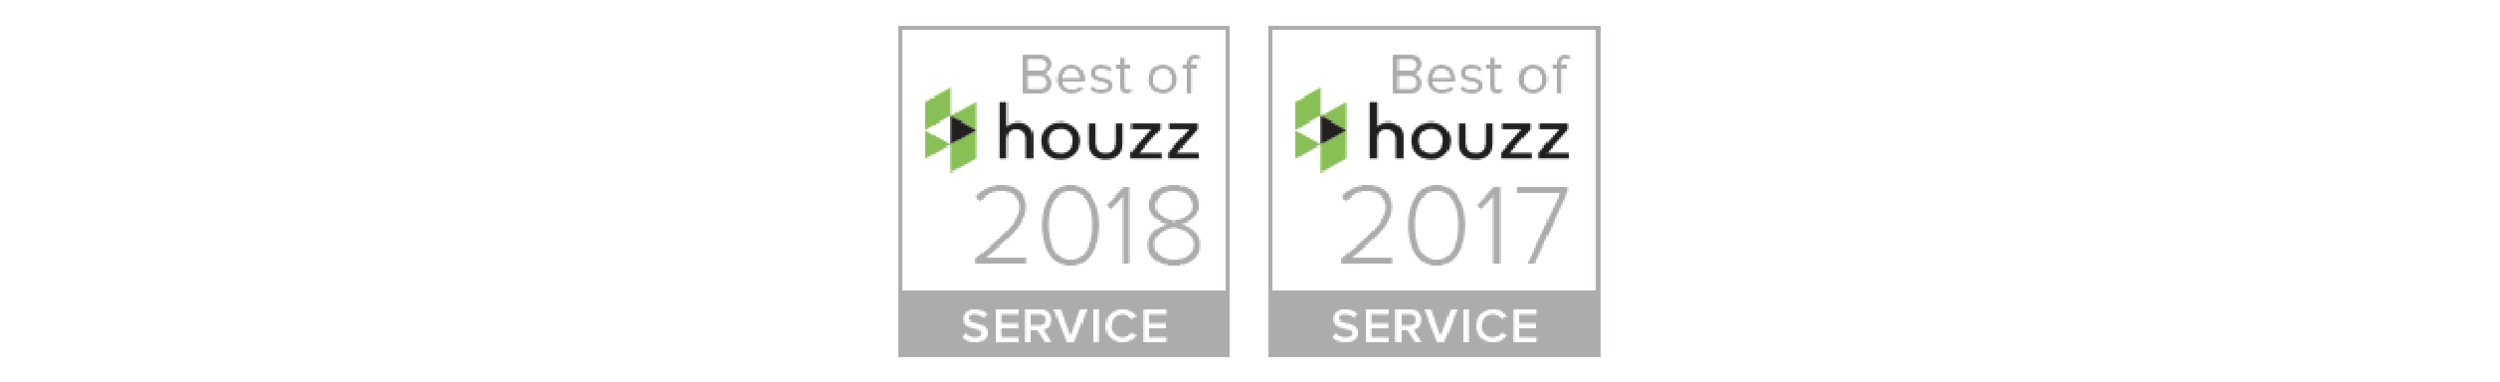 kelly collective interiors - best of houzz awards.png